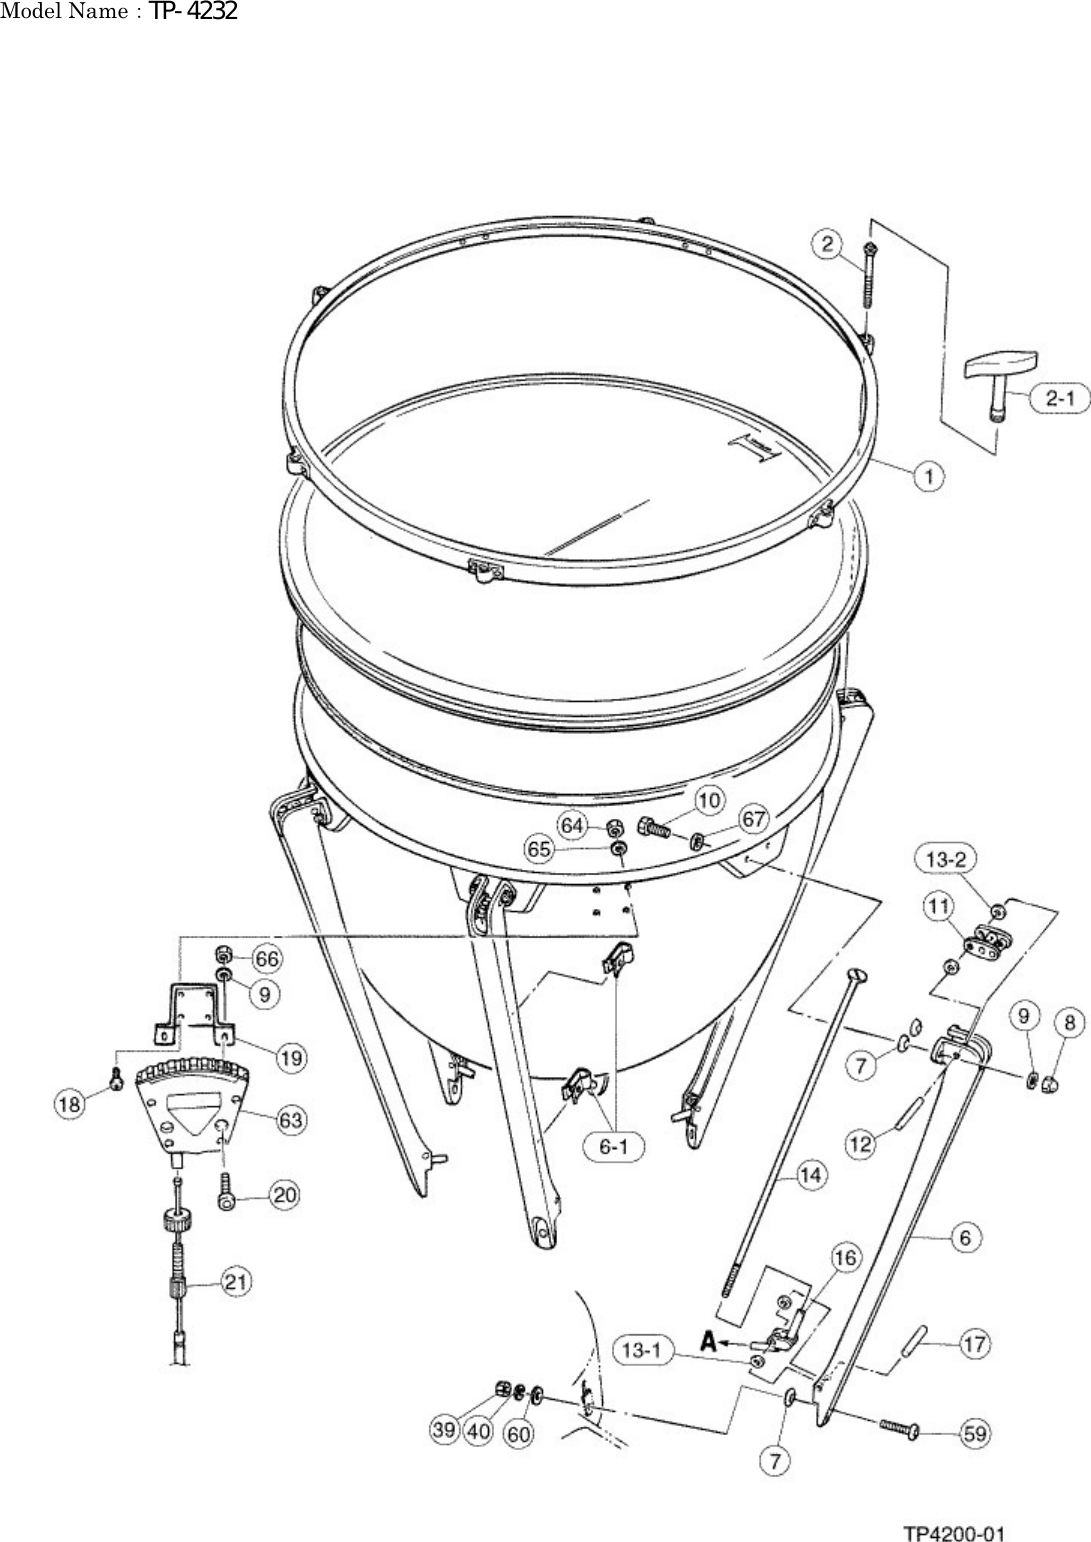 Yamaha PARTS TP 4232 Diagram